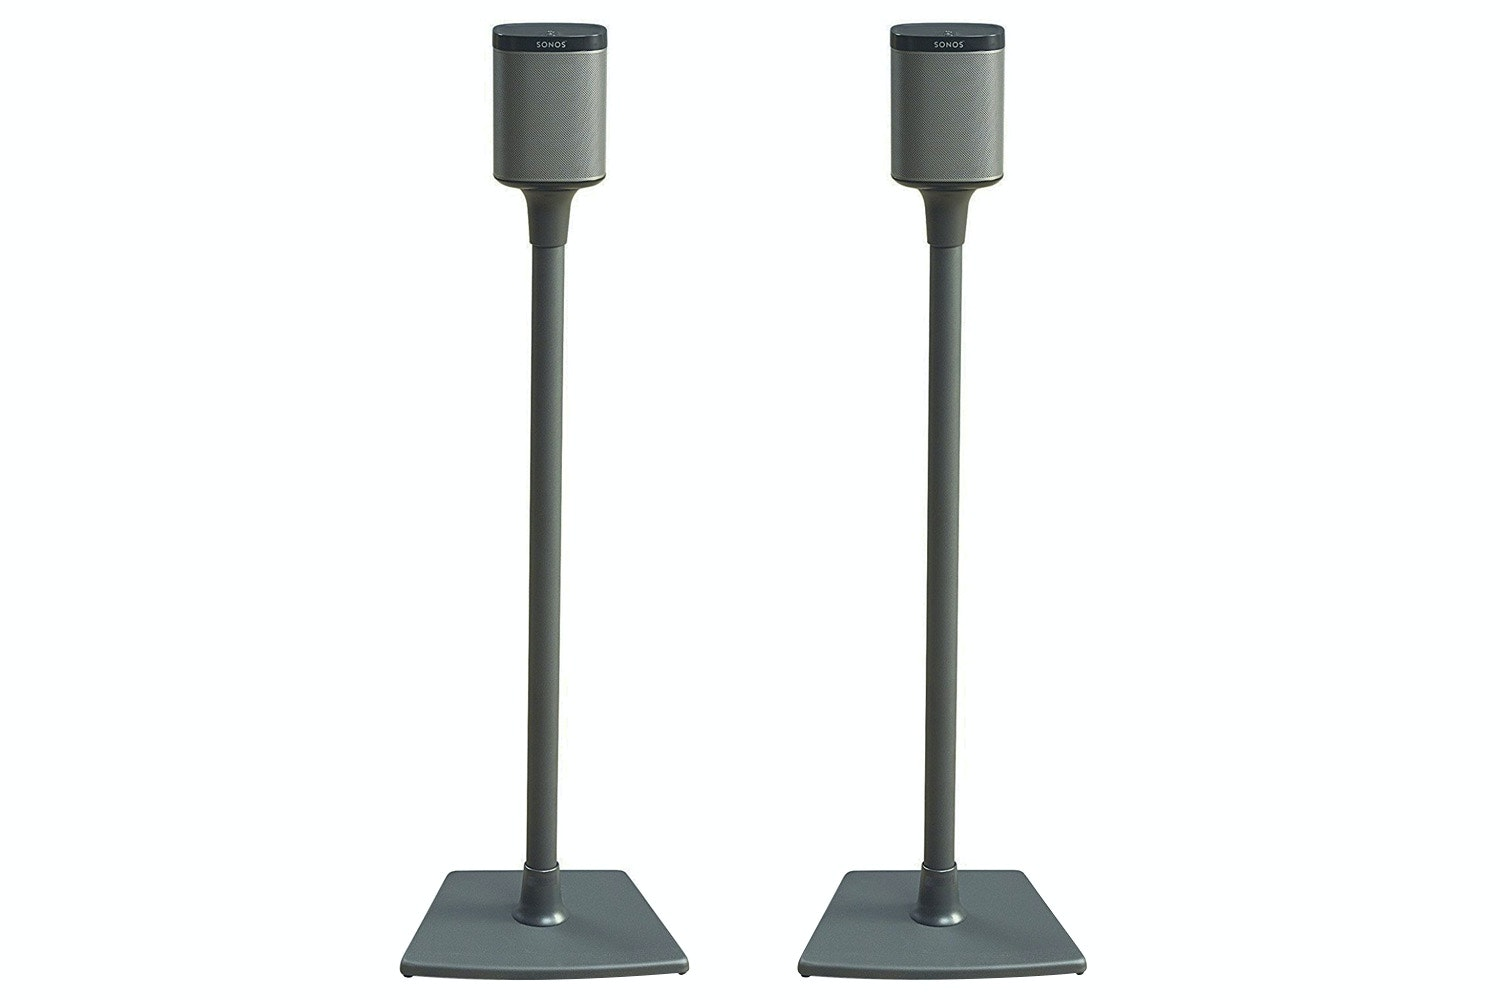 Sanus Wireless Series Speaker Stands for Sonos PLAY 1 & PLAY 3 Black | WSS2-B1